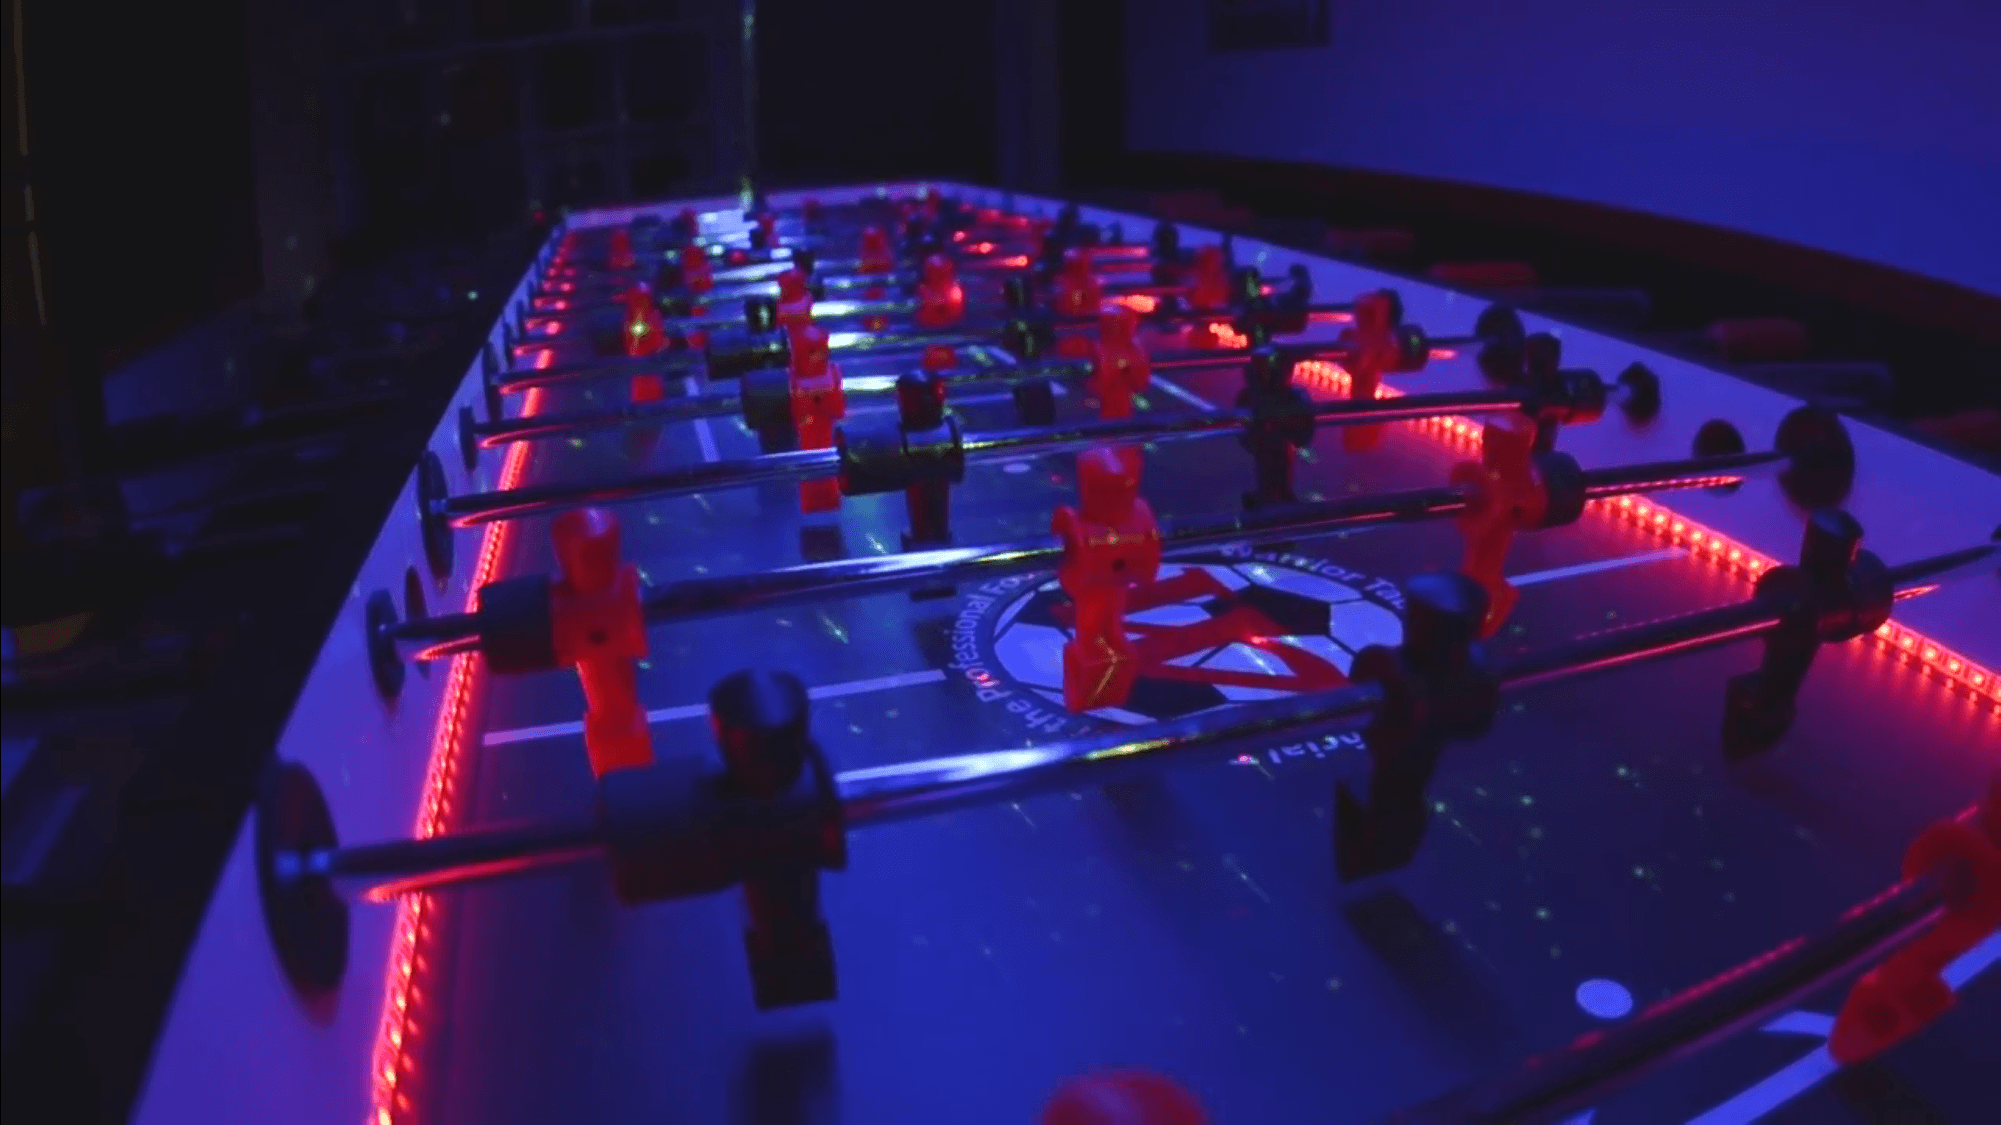 GIANT LED FOOSBALL TABLE RENTAL Lets Party - Foosball table light